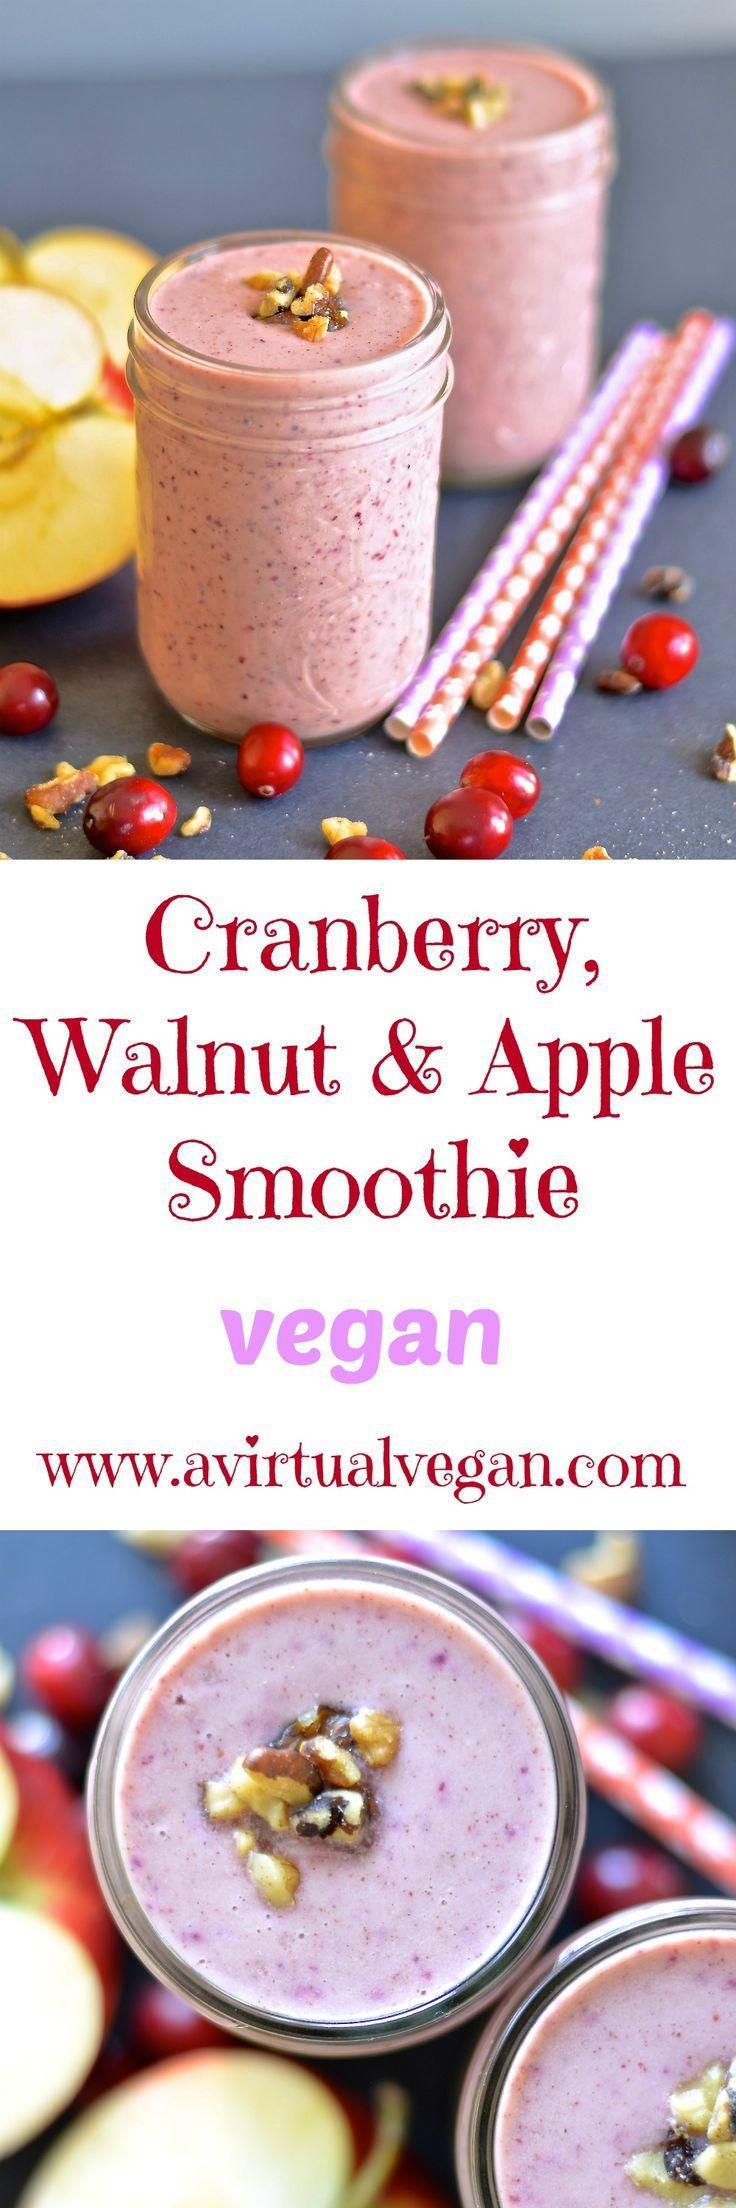 This creamy Cranberry, Walnut & Apple Smoothie is perfect for the holidays and will really hit the spot with its warm & spicy fall flavours.